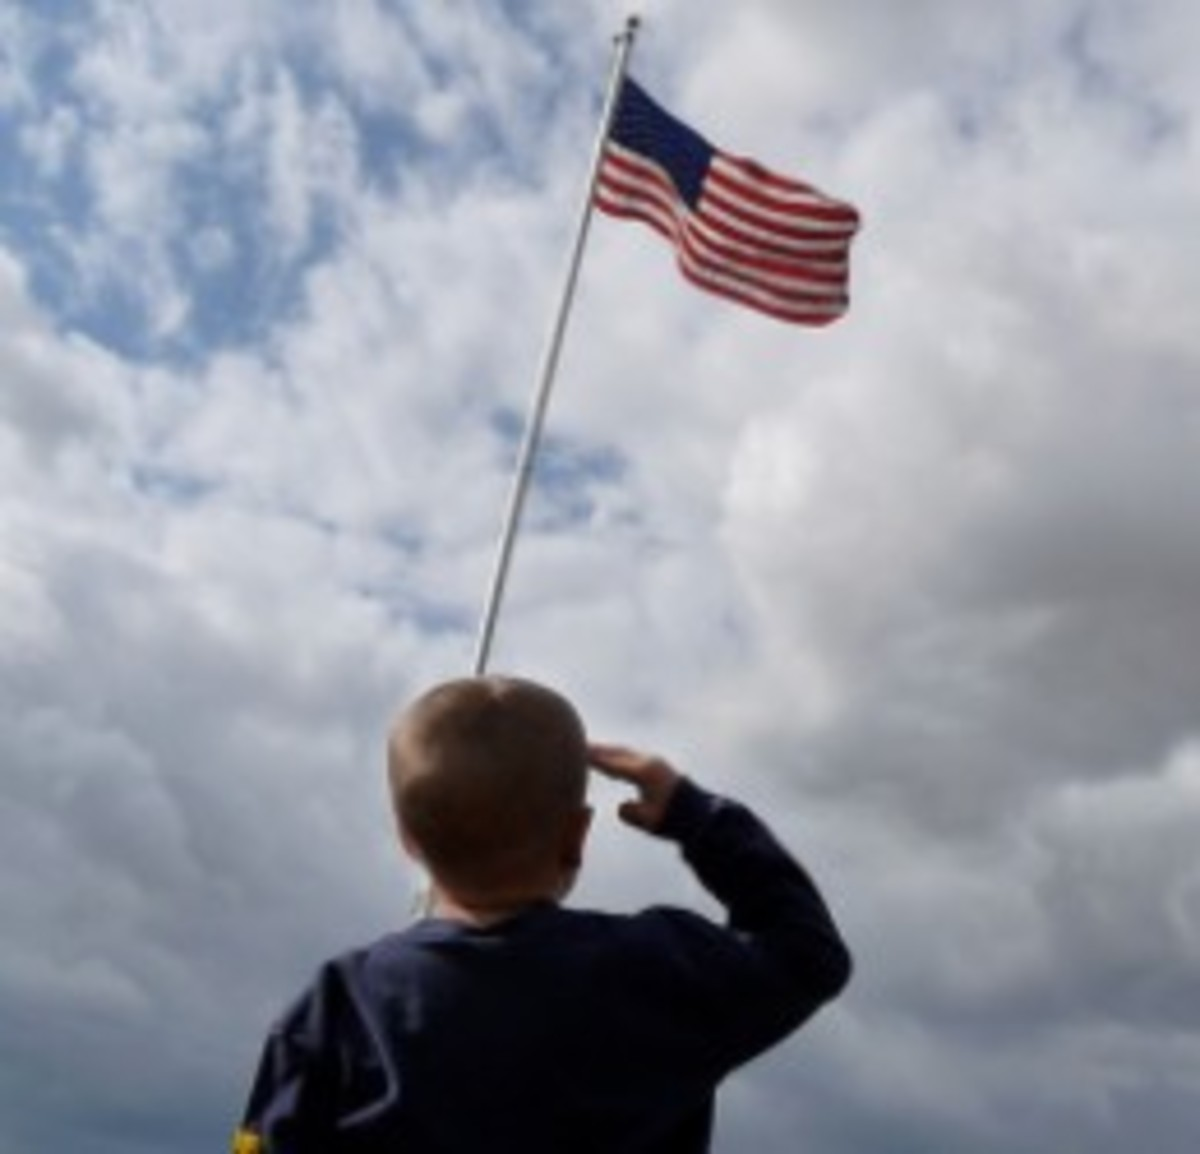 A child shows respect by saluting the red, white, and blue American flag.